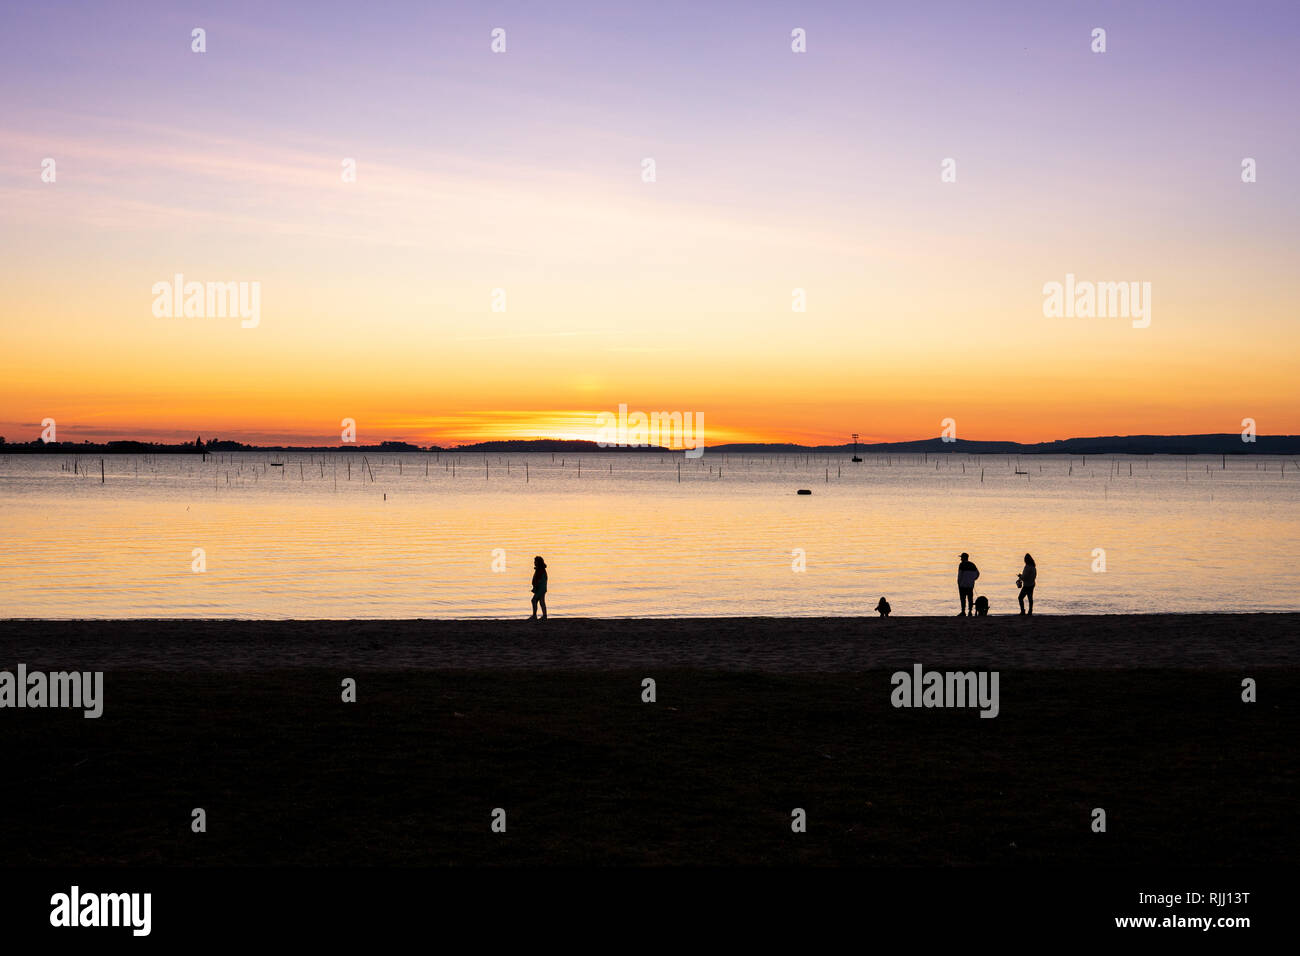 Group of people walking on the beach at sunset. Beautiful marine landscape with calm sea. Rias Baixas, Galicia, Spain - Stock Image